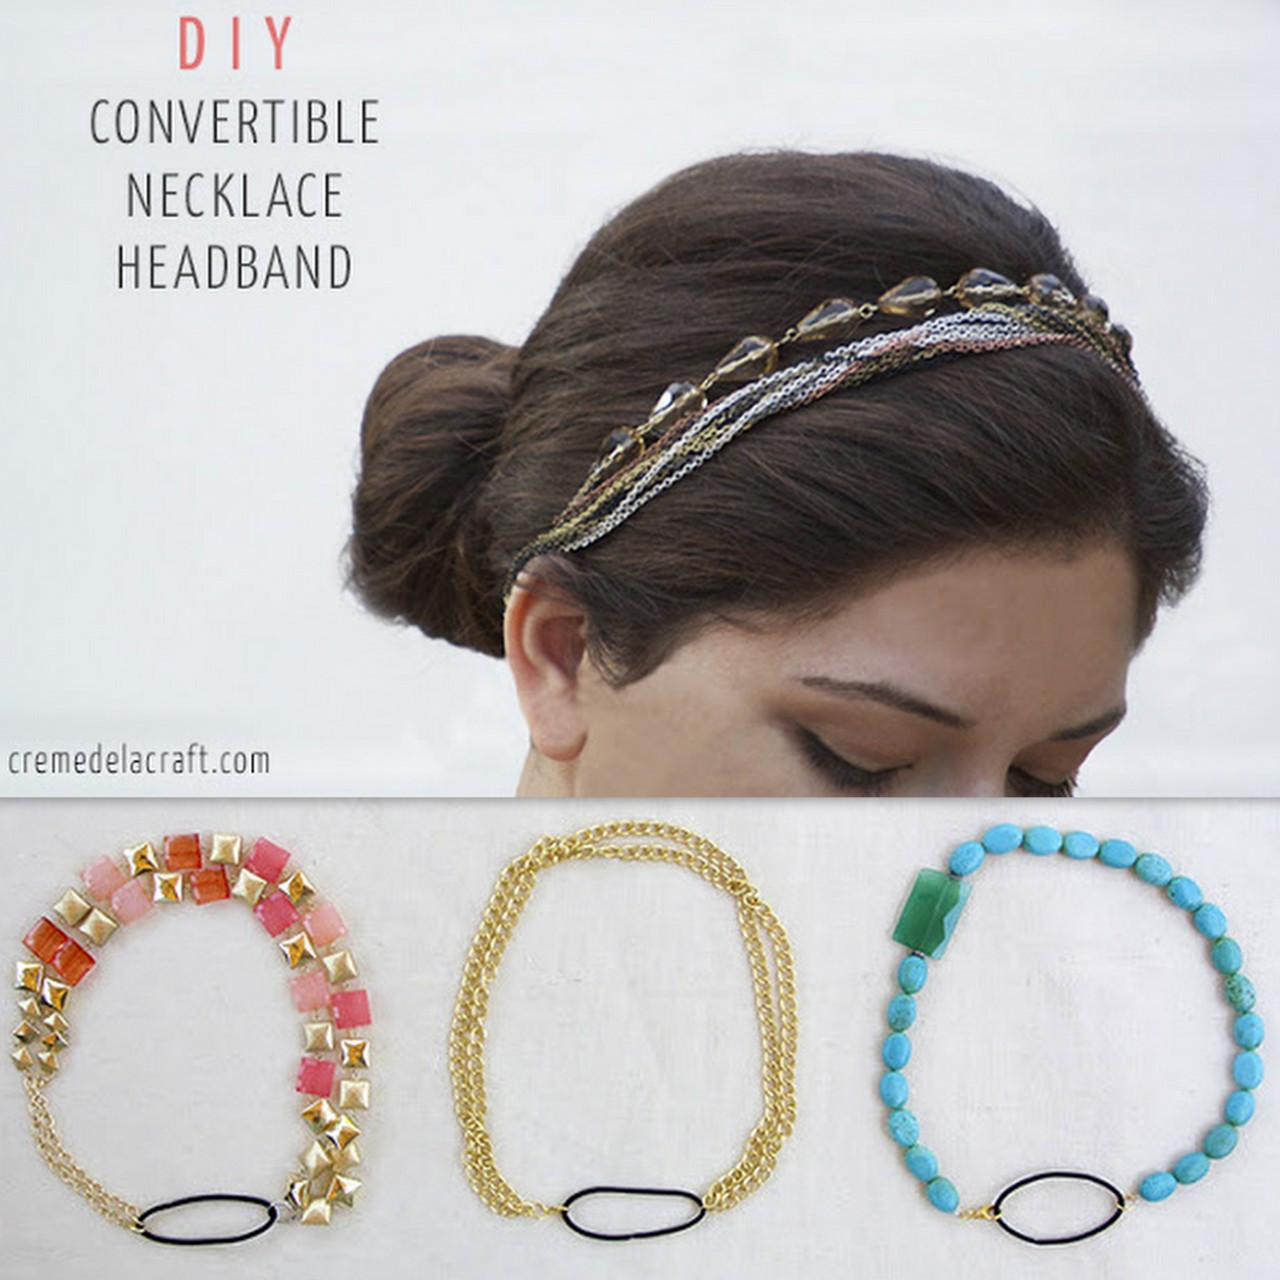 truebluemeandyou:  DIY 5 Minute Necklace to Headband Tutorial from Creme de la Craft here. Only pliers and a hair elastic needed. For more DIY Headbands go here: truebluemeandyou.tumblr.com/tagged/headband and for more head pieces go here: truebluemeandyou.tumblr.com/tagged/headband